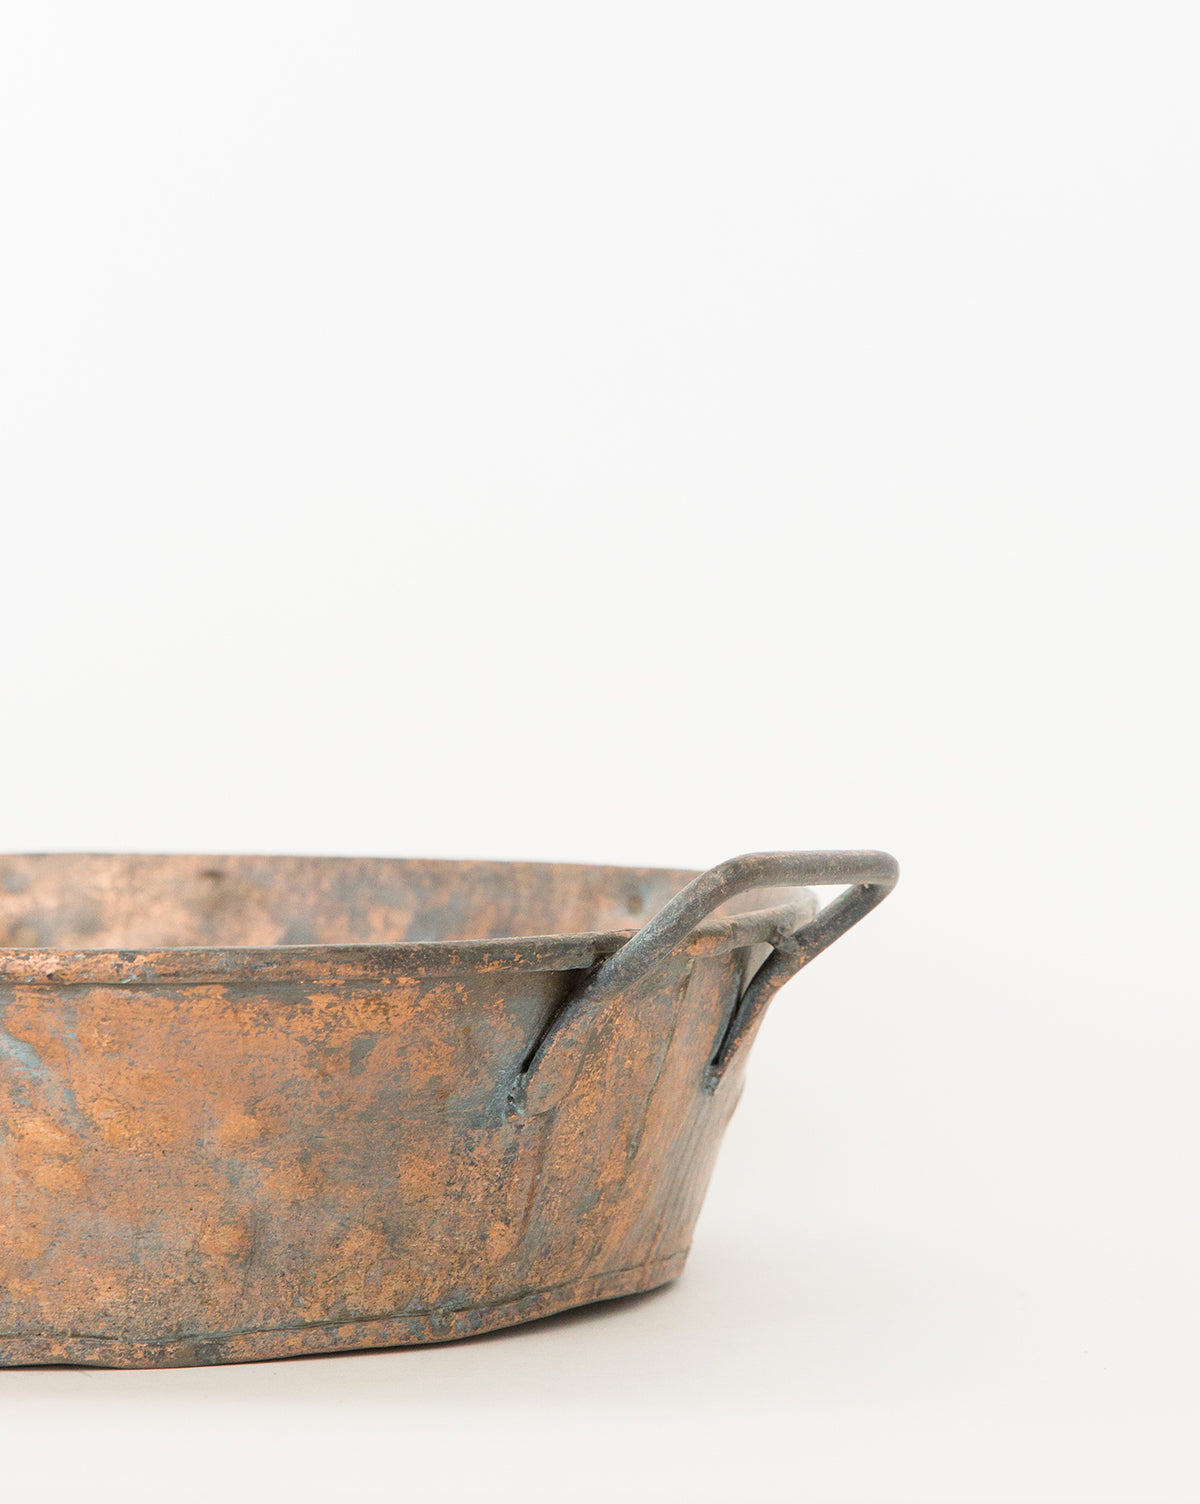 Weathered Shallow Bowl